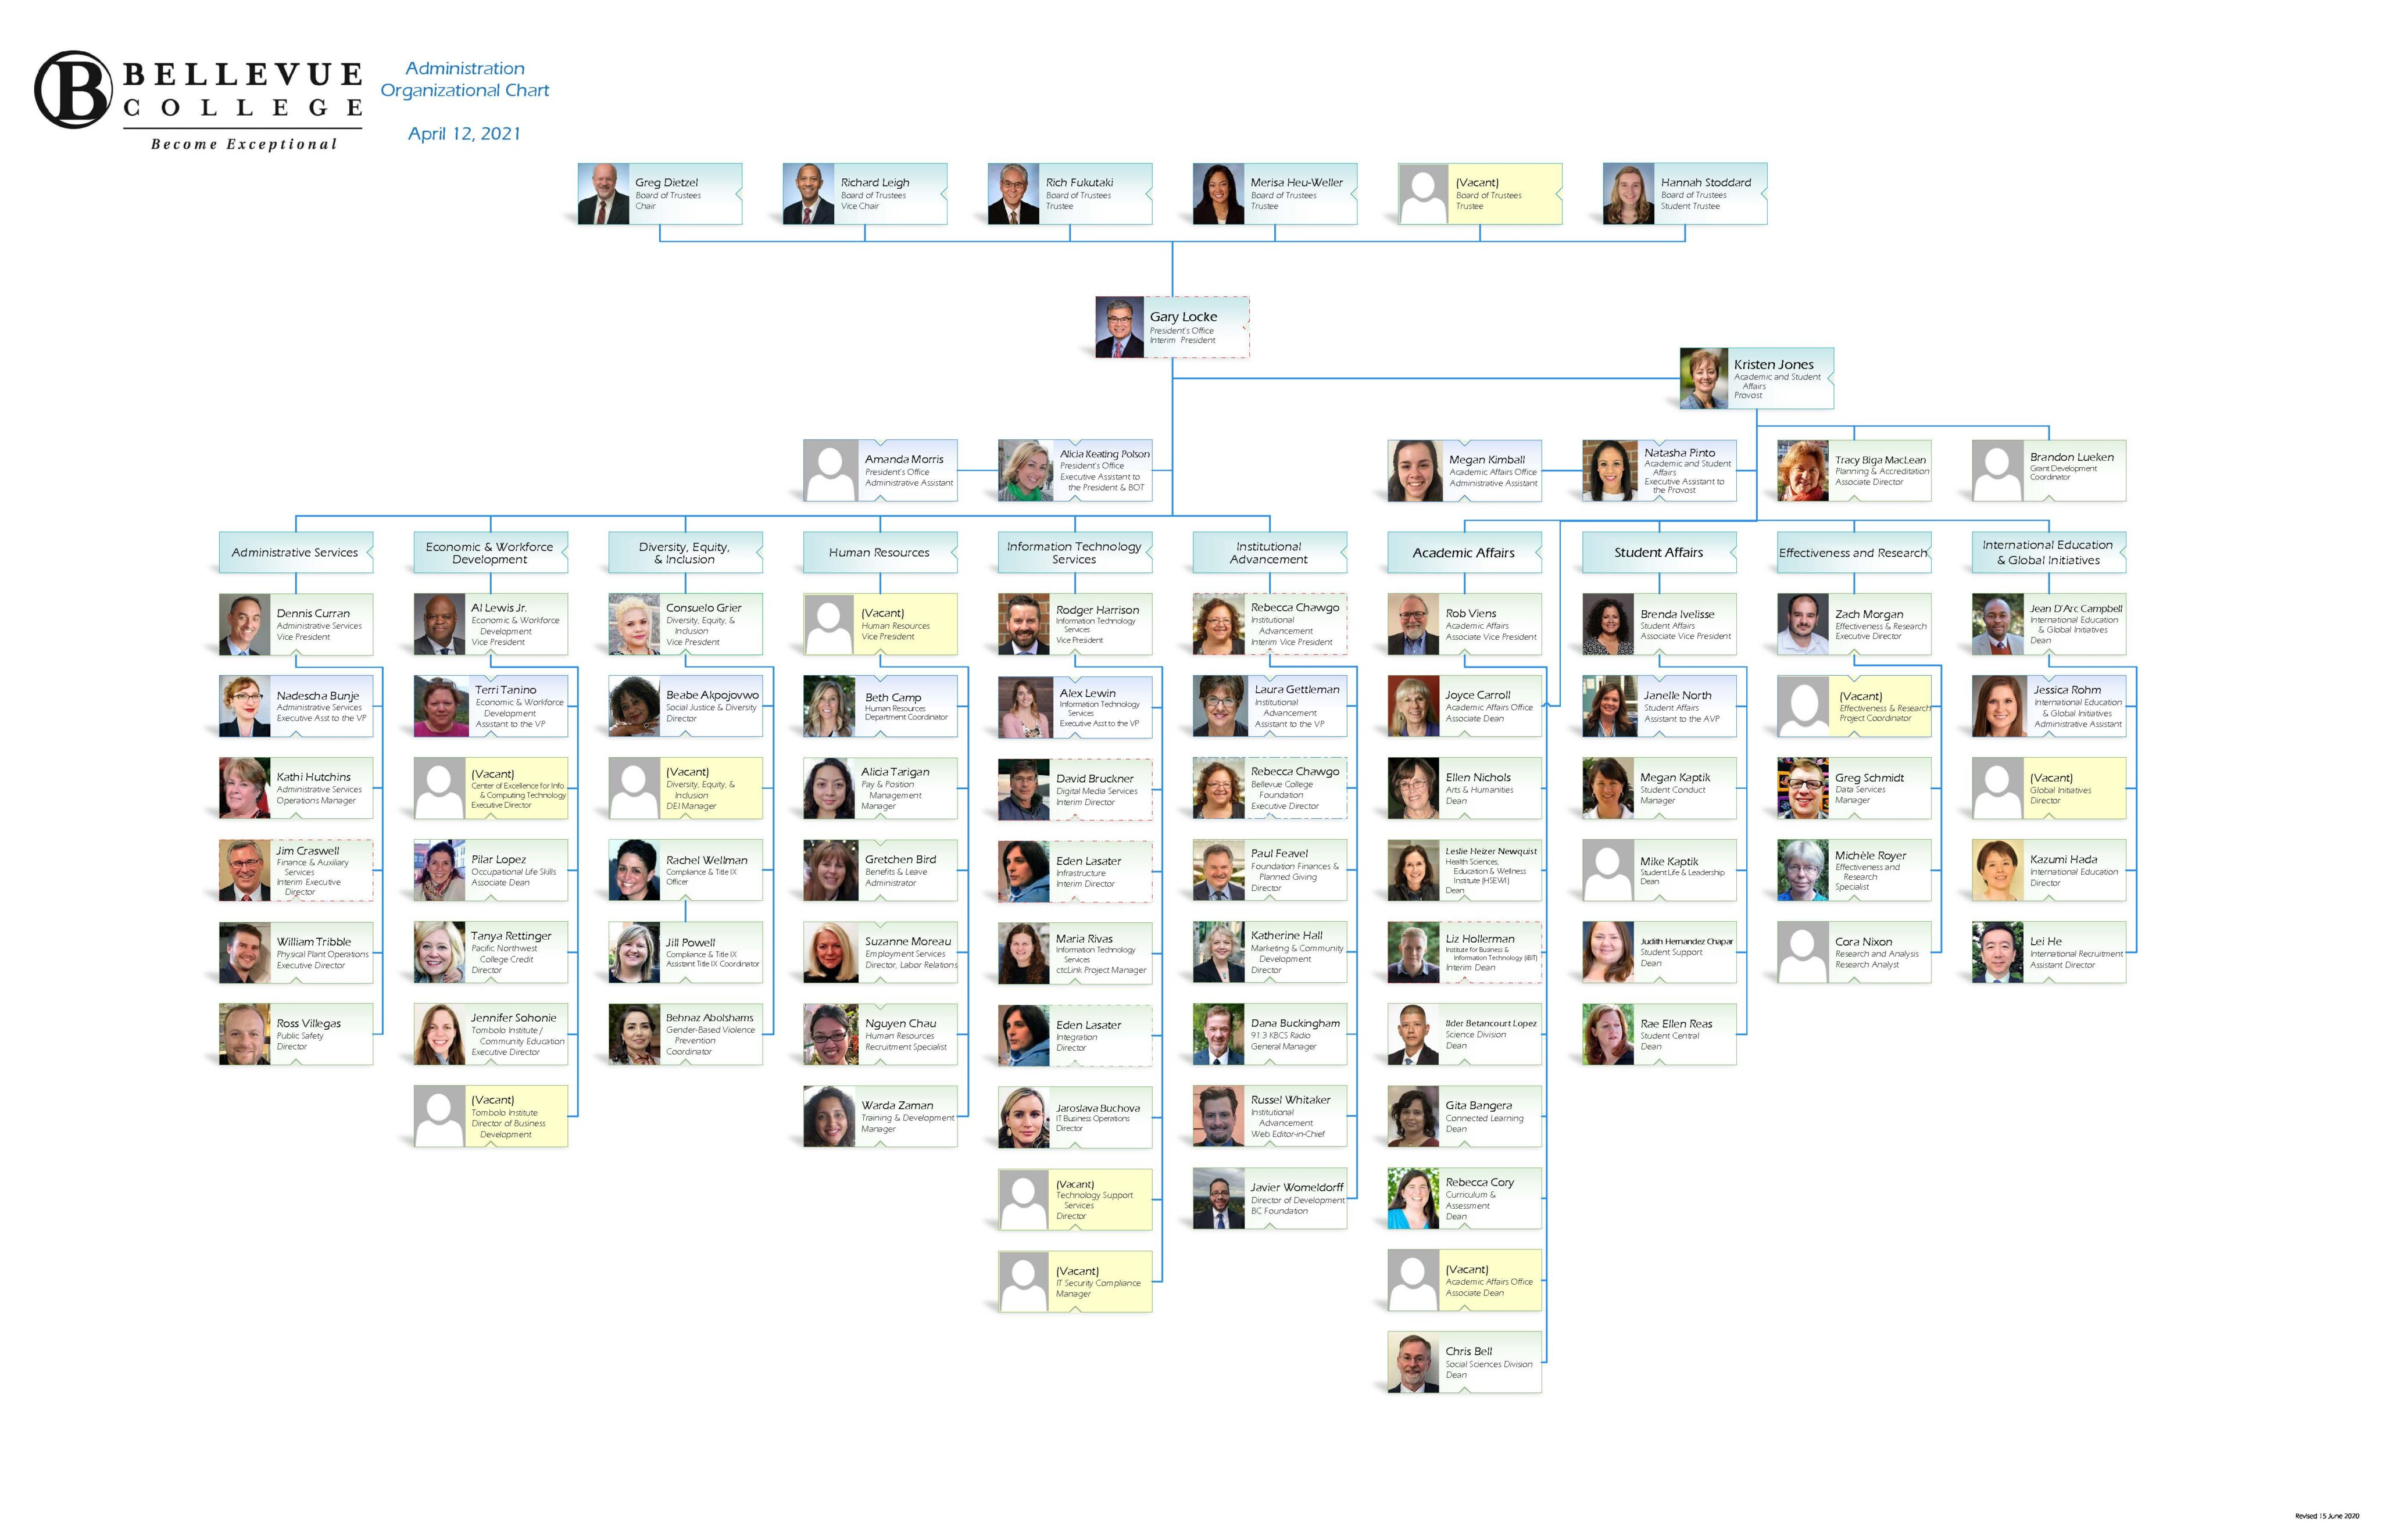 An image version of the BC Admin Organizational Chart which links to a PDF version of the same file.